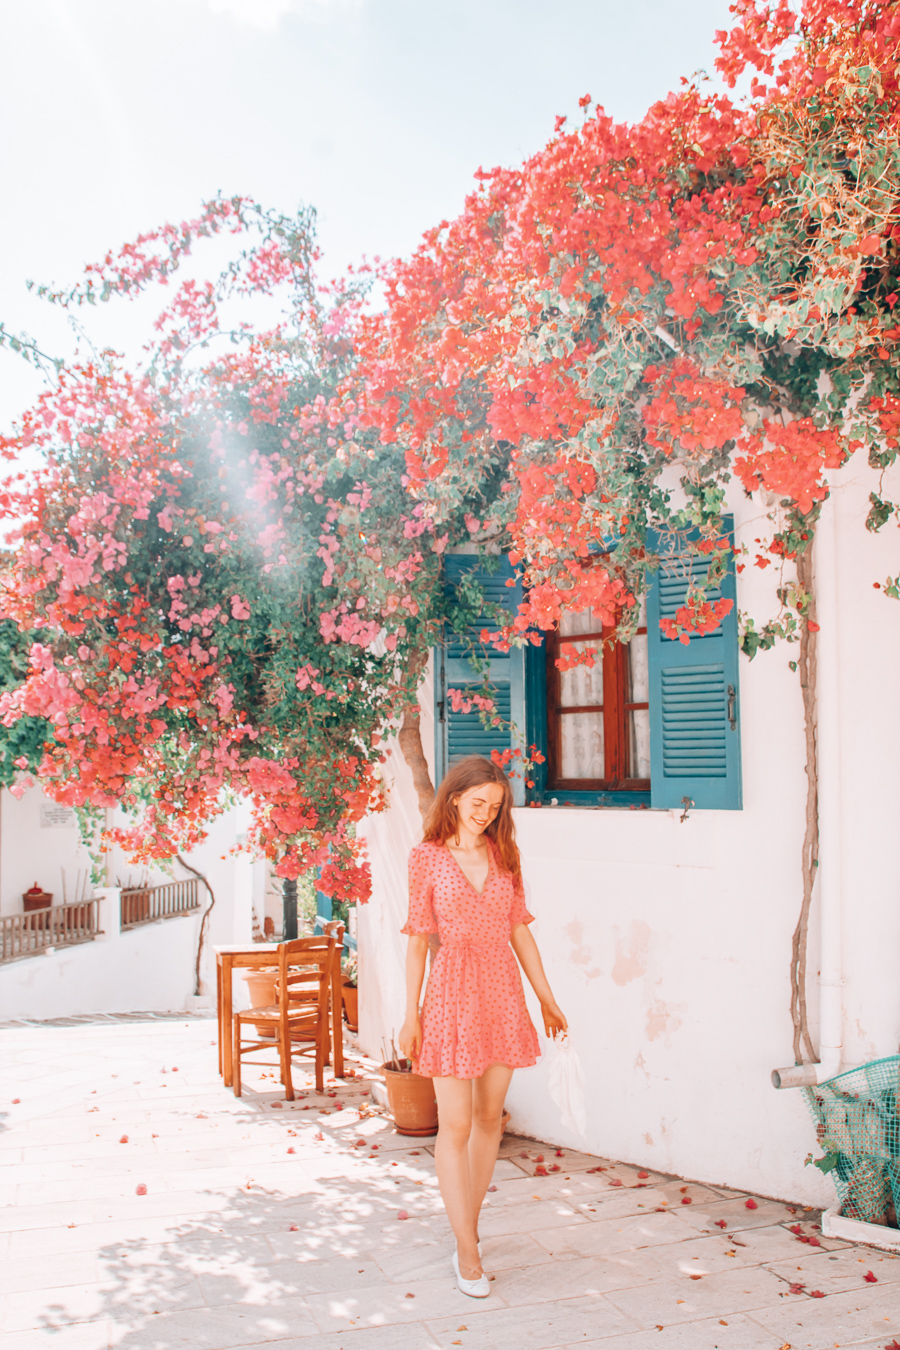 Building with flowers in Paros